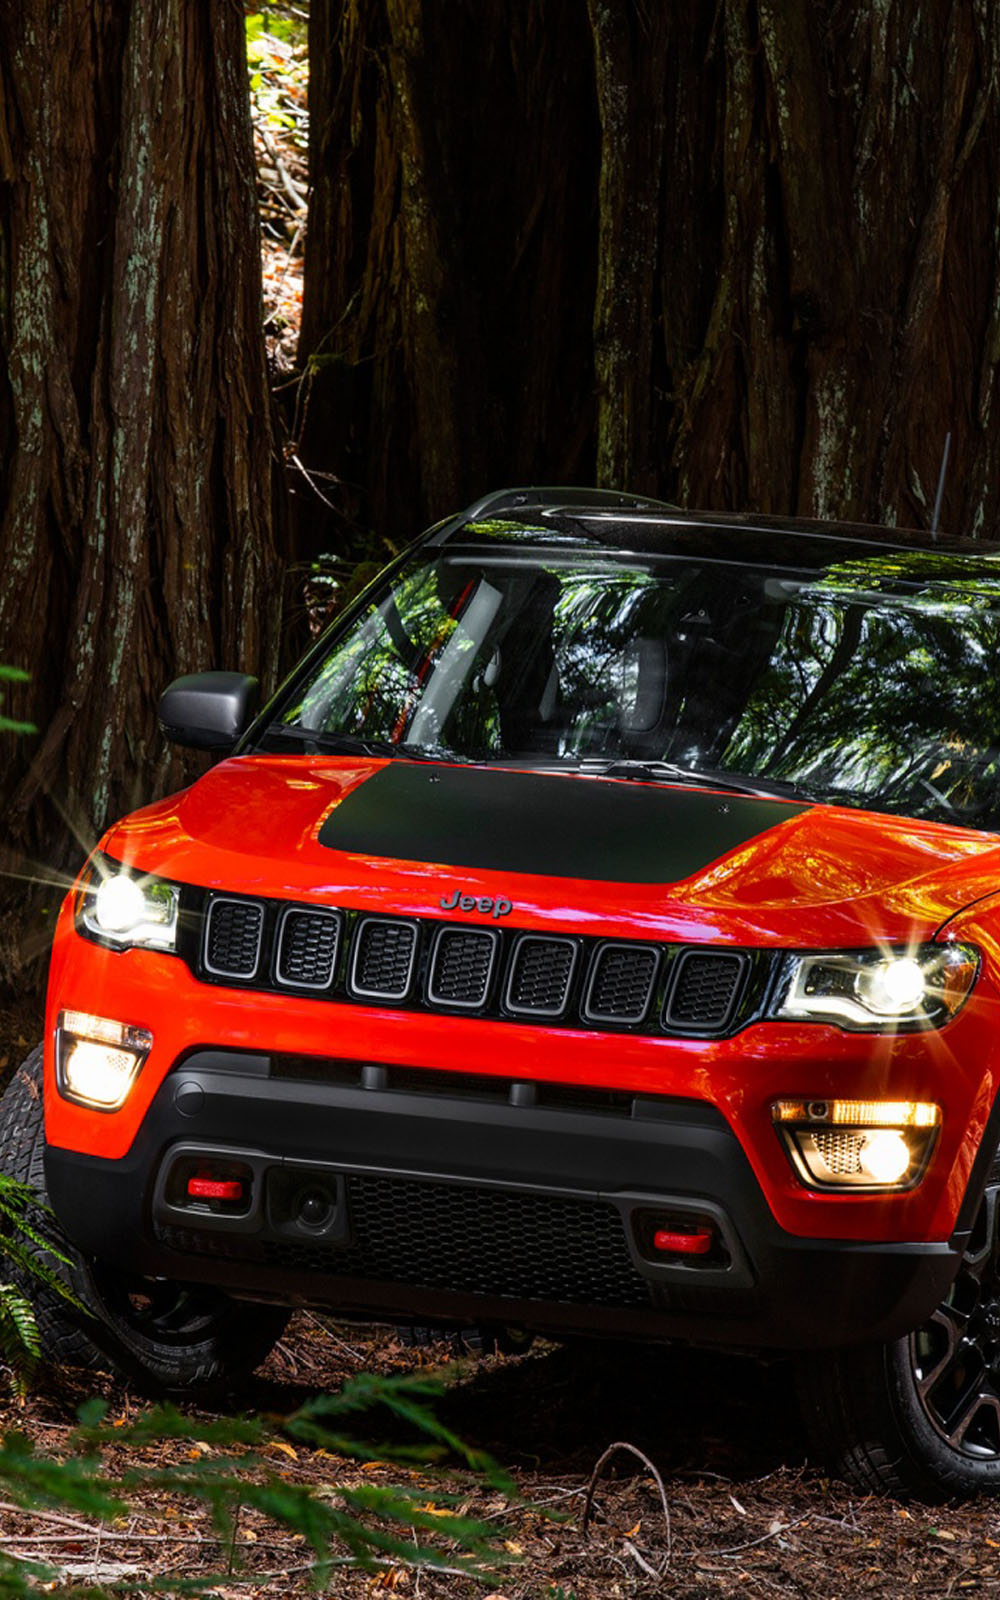 Jeep red compass trailhawk download free hd mobile wallpapers - Compass hd wallpaper ...